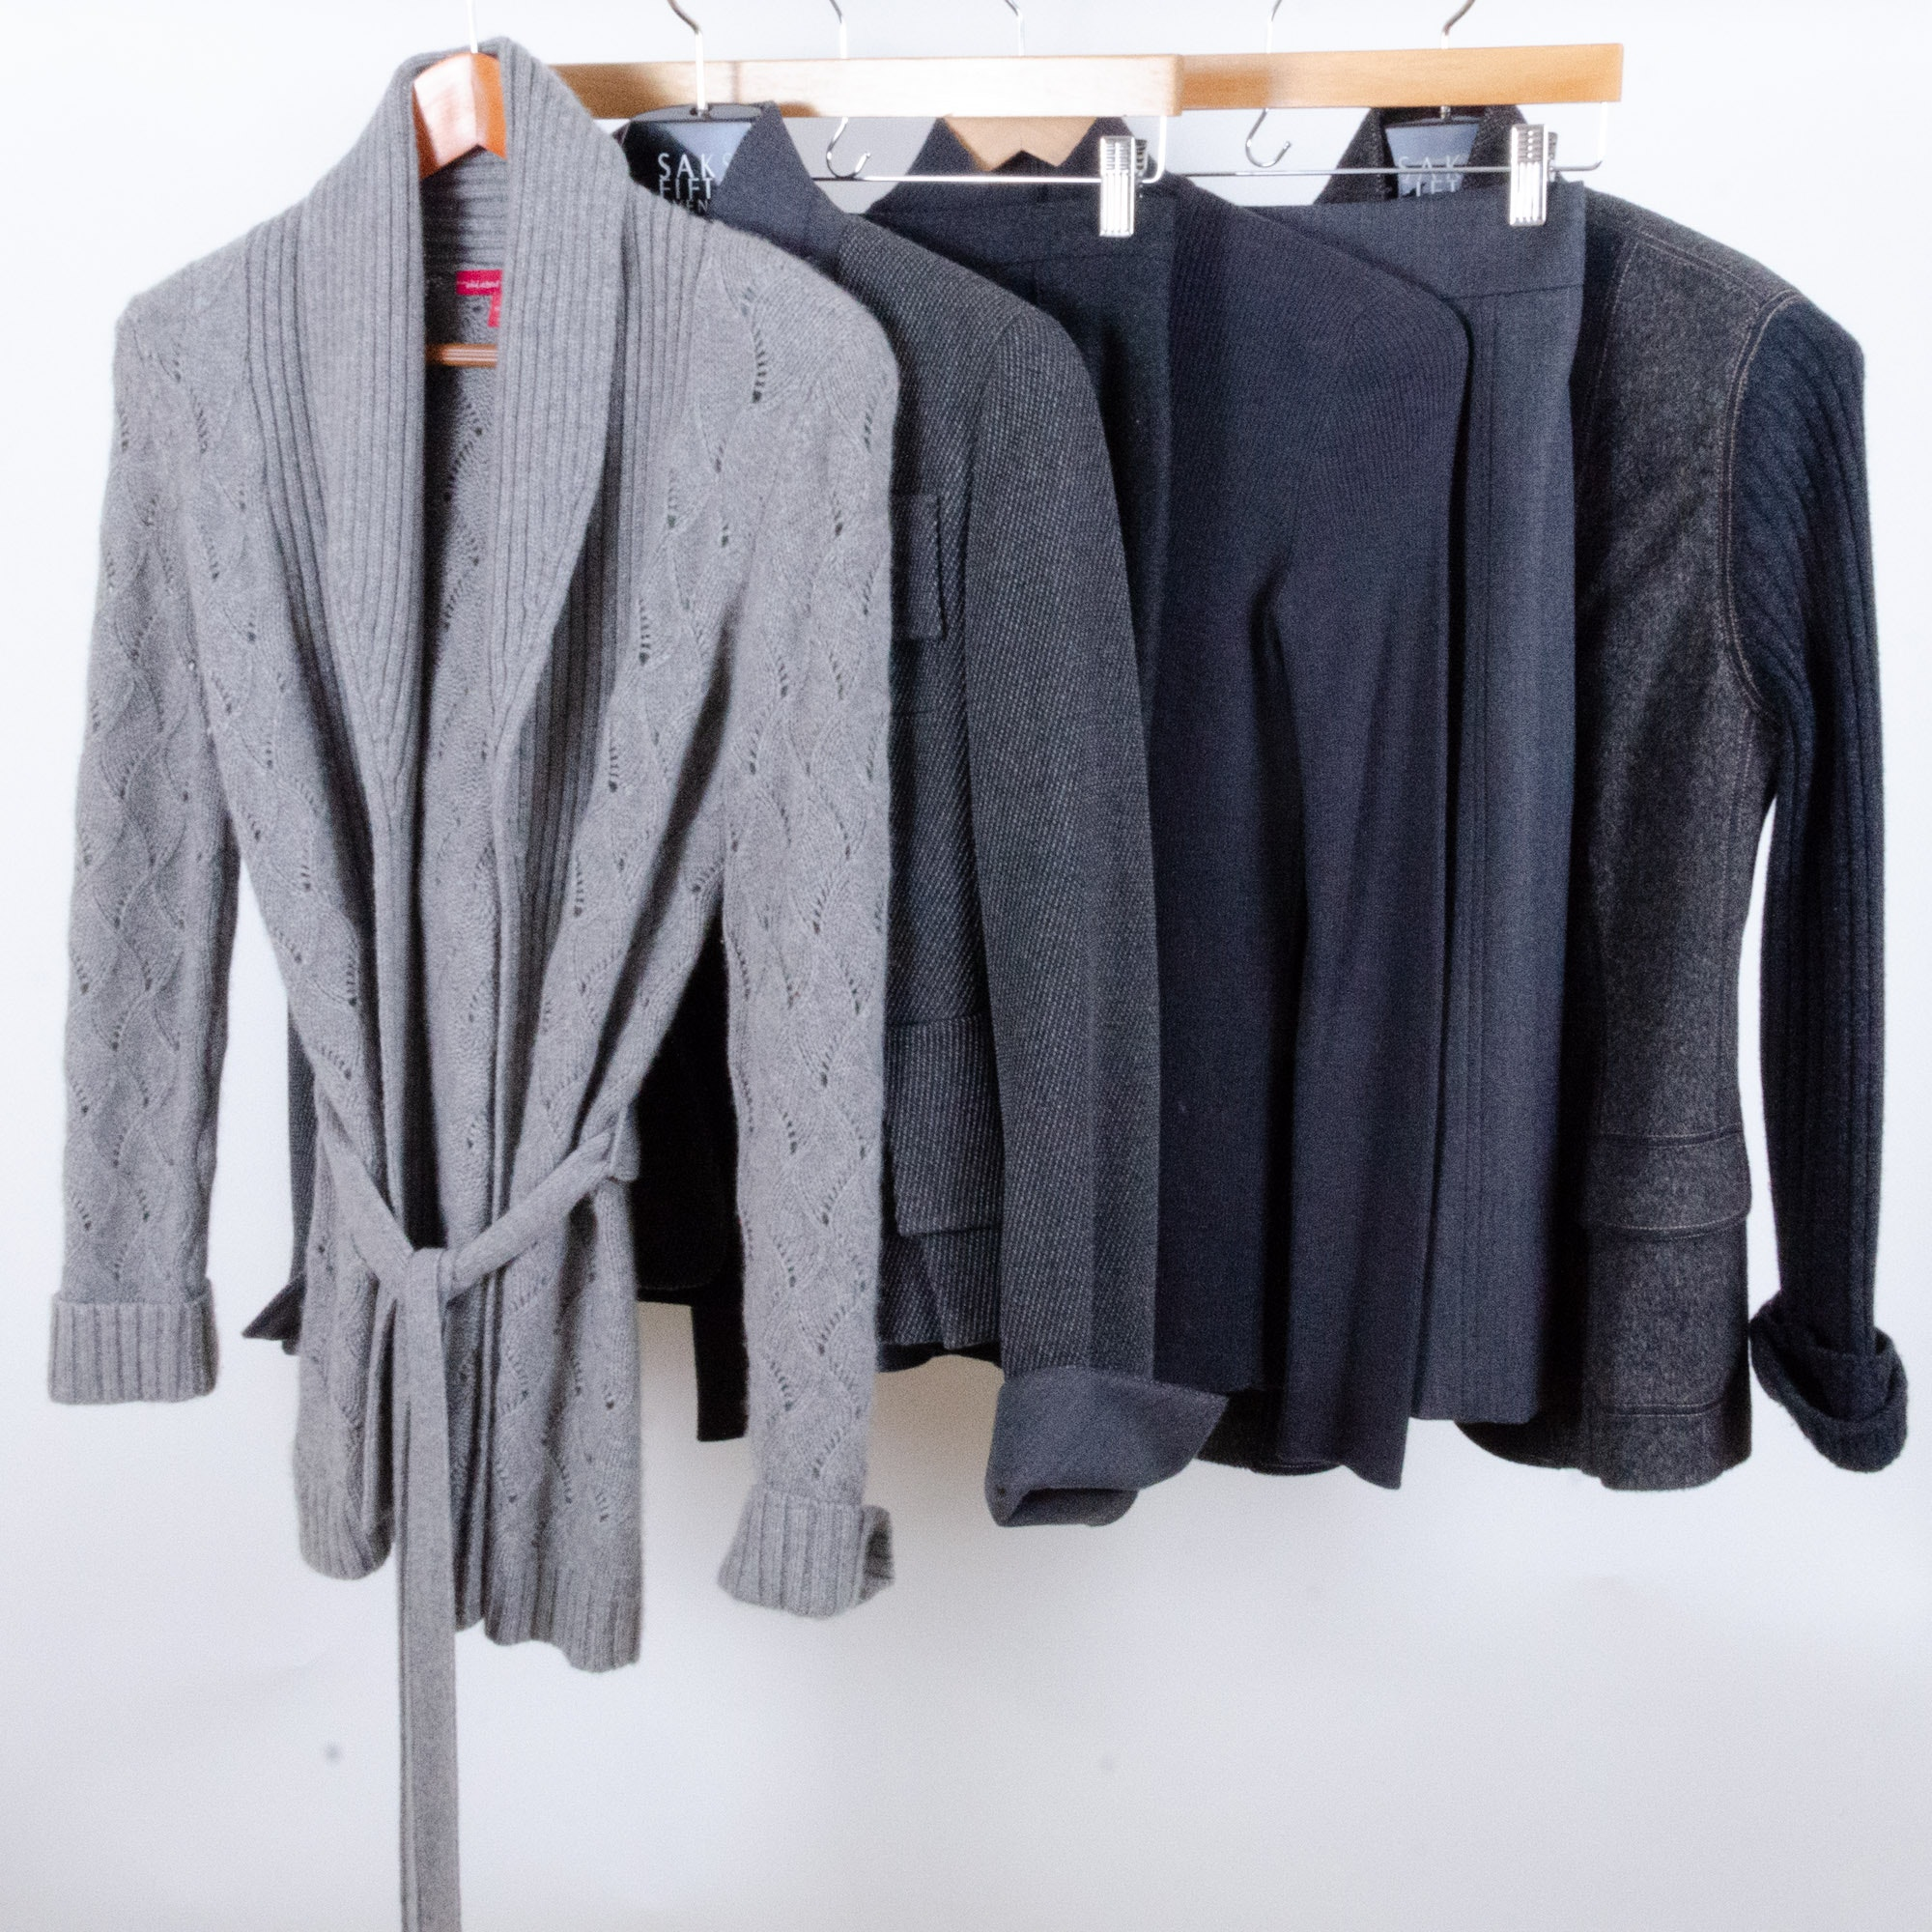 Women's Wool Jackets and Skirts, Cashmere Sweater with Saks, Akris Punto, Escada